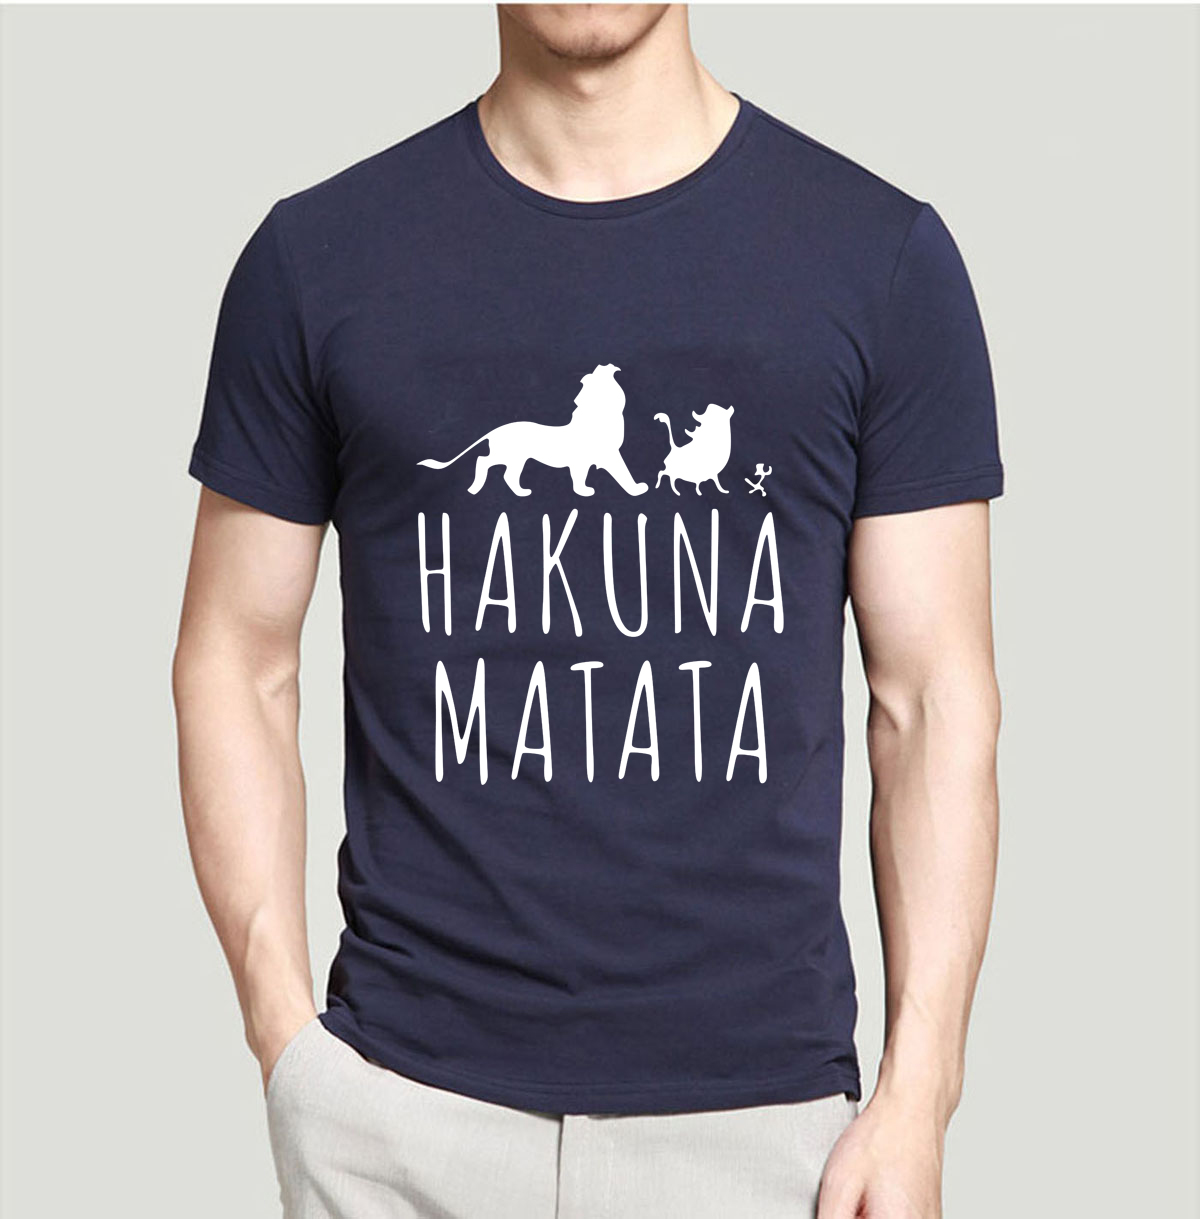 HAKUNA MATATA Men T Shirt 2019 Summer 100% Cotton High Quality Men T Shirt Slim Fit Casual Anime T-Shirt The Lion King Tops Tees(China)